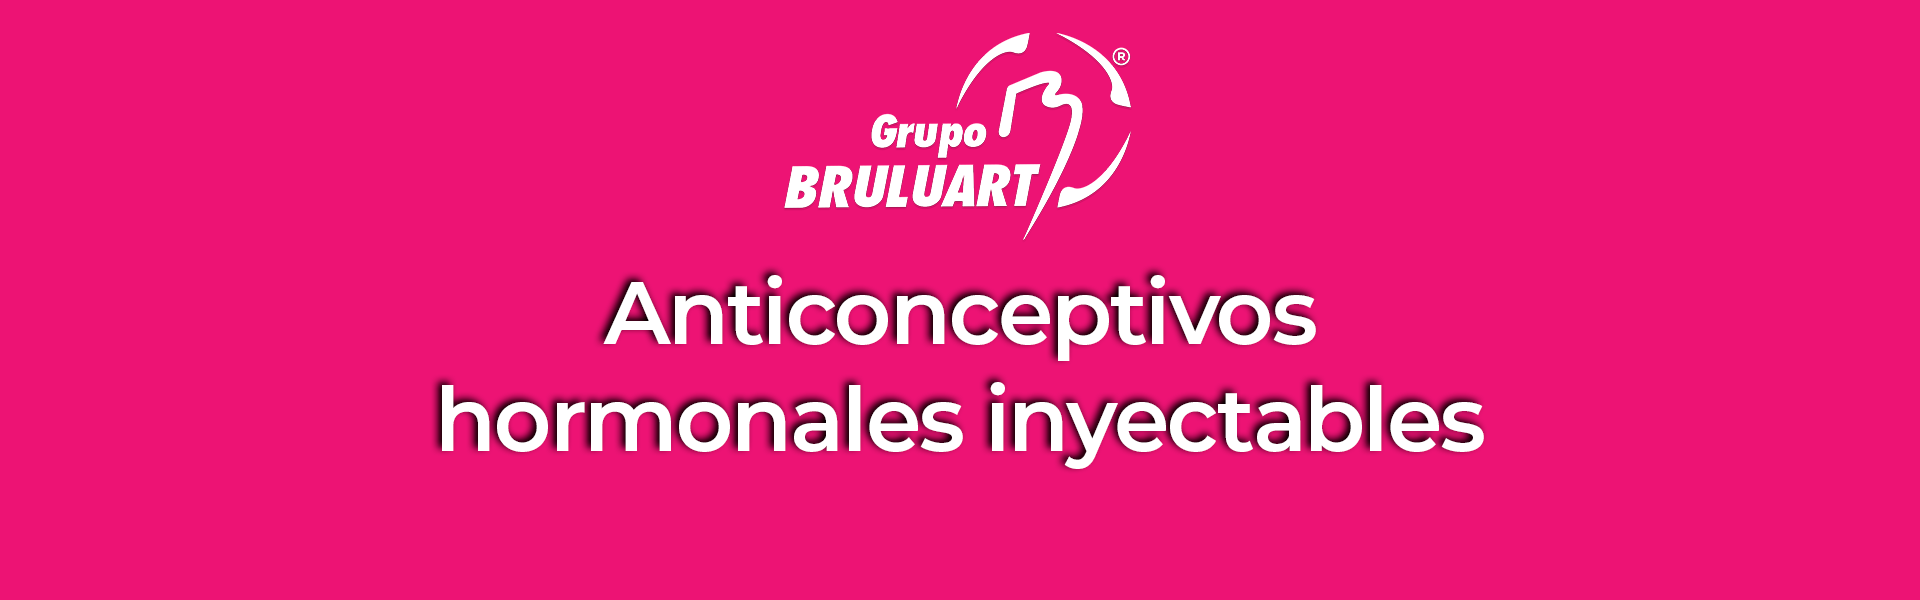 ANTICONCEPTIVOS INYECTABLES